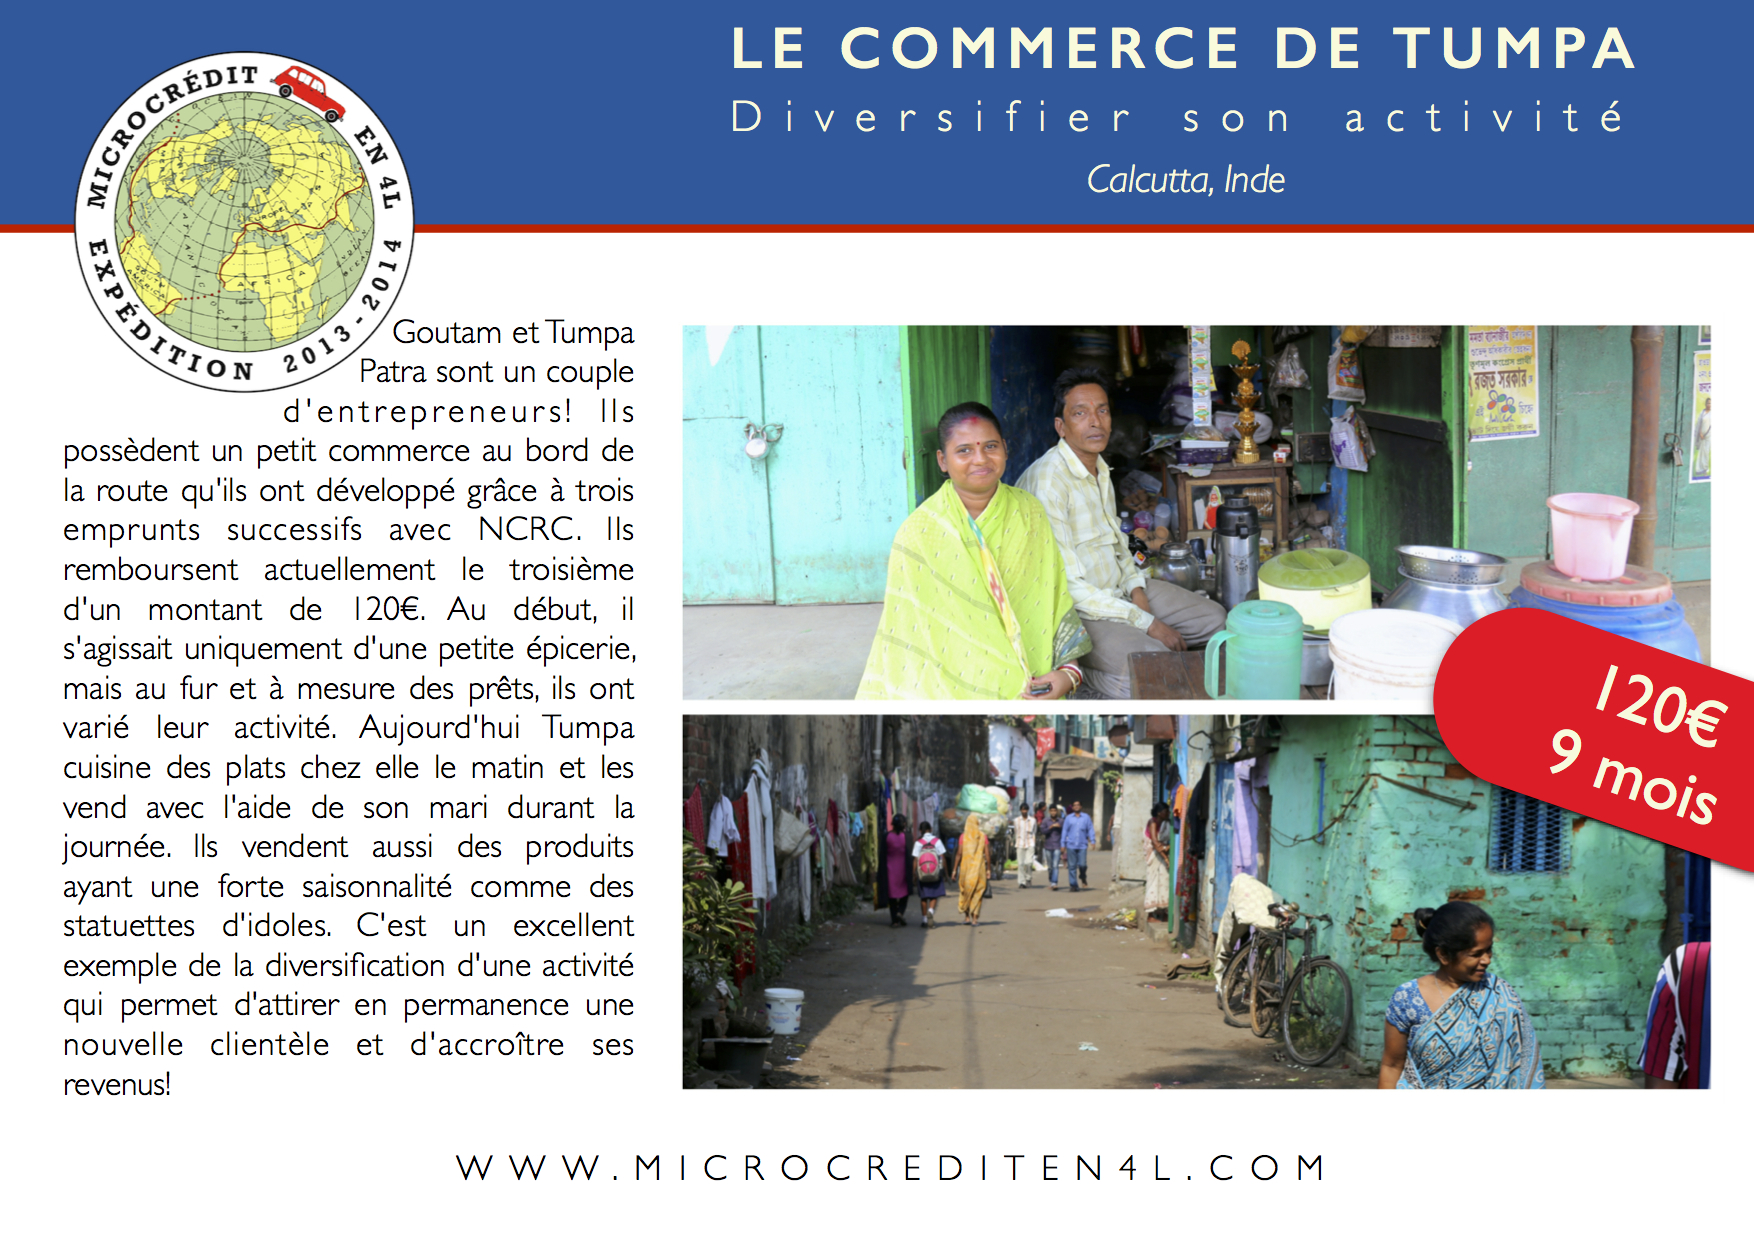 Le commerce de Tumpa